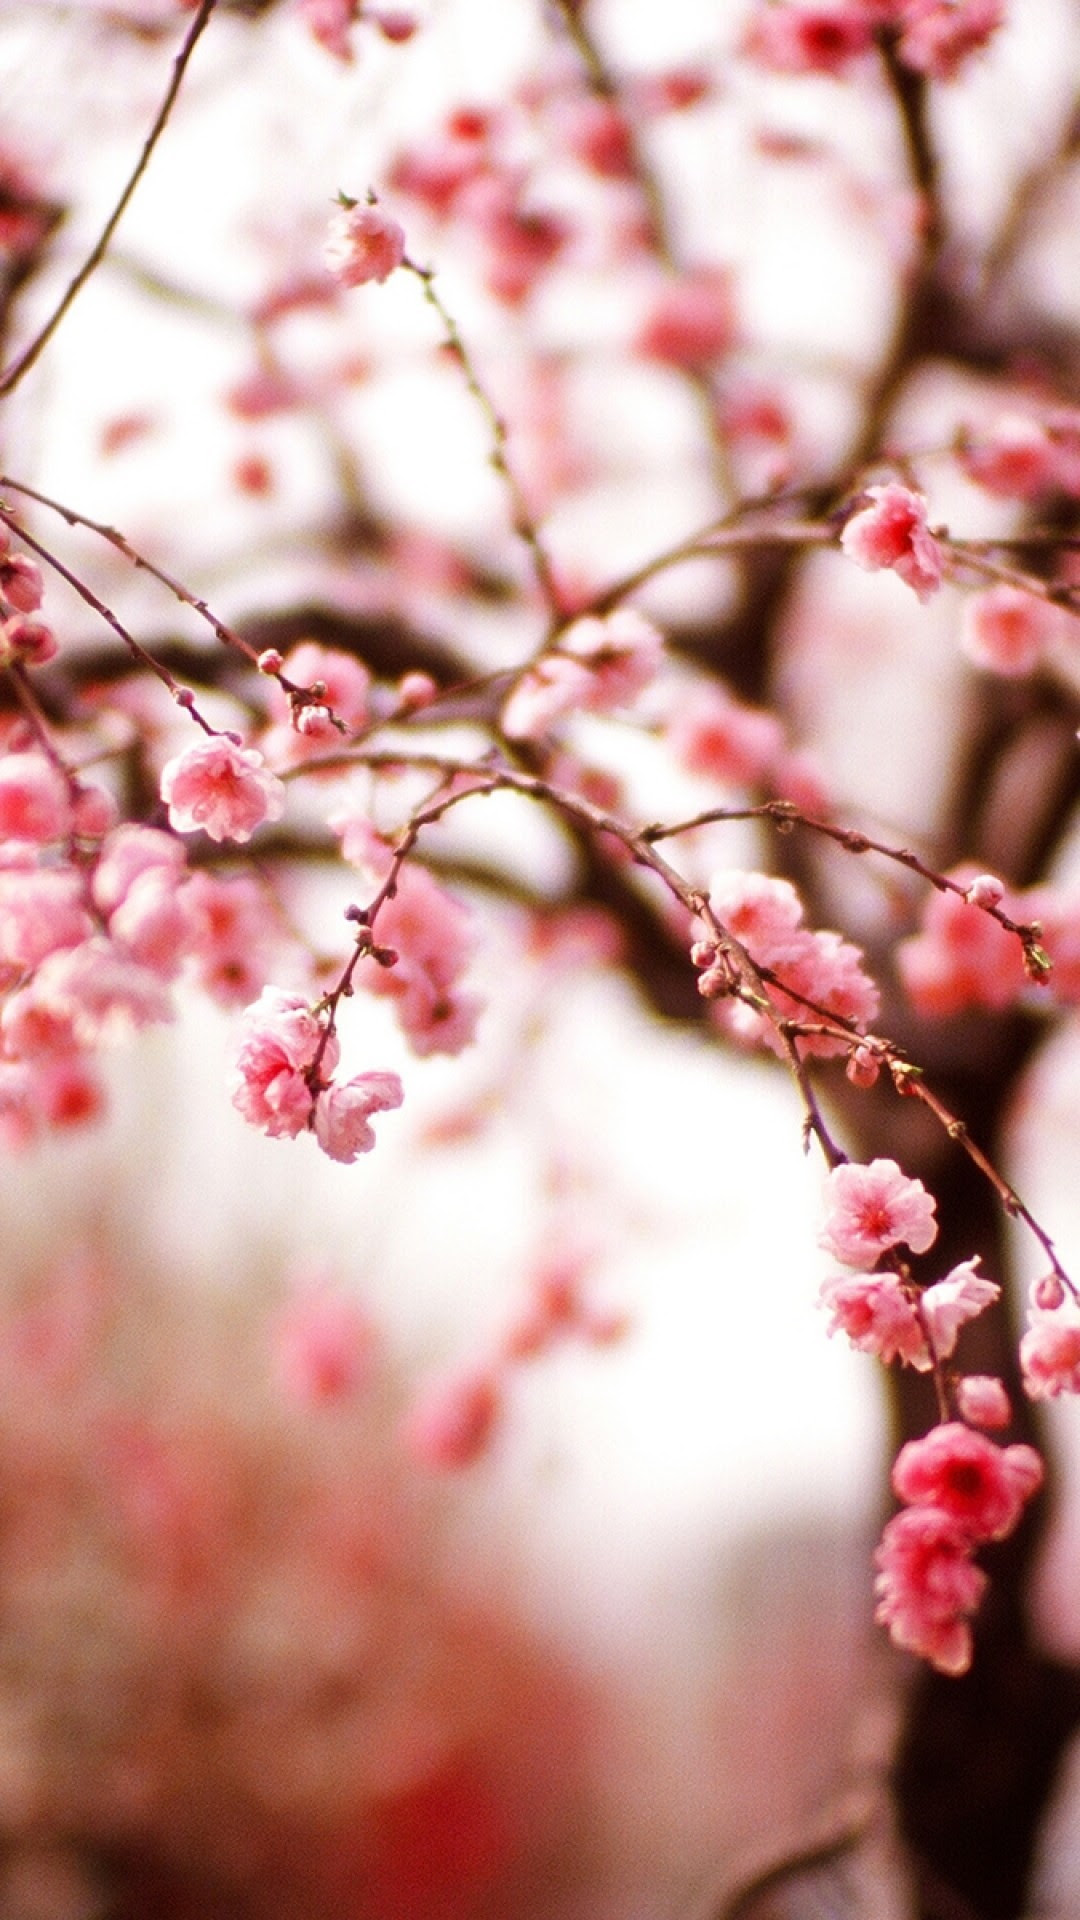 Cherry Blossoms iPhone Wallpaper (75+ images)